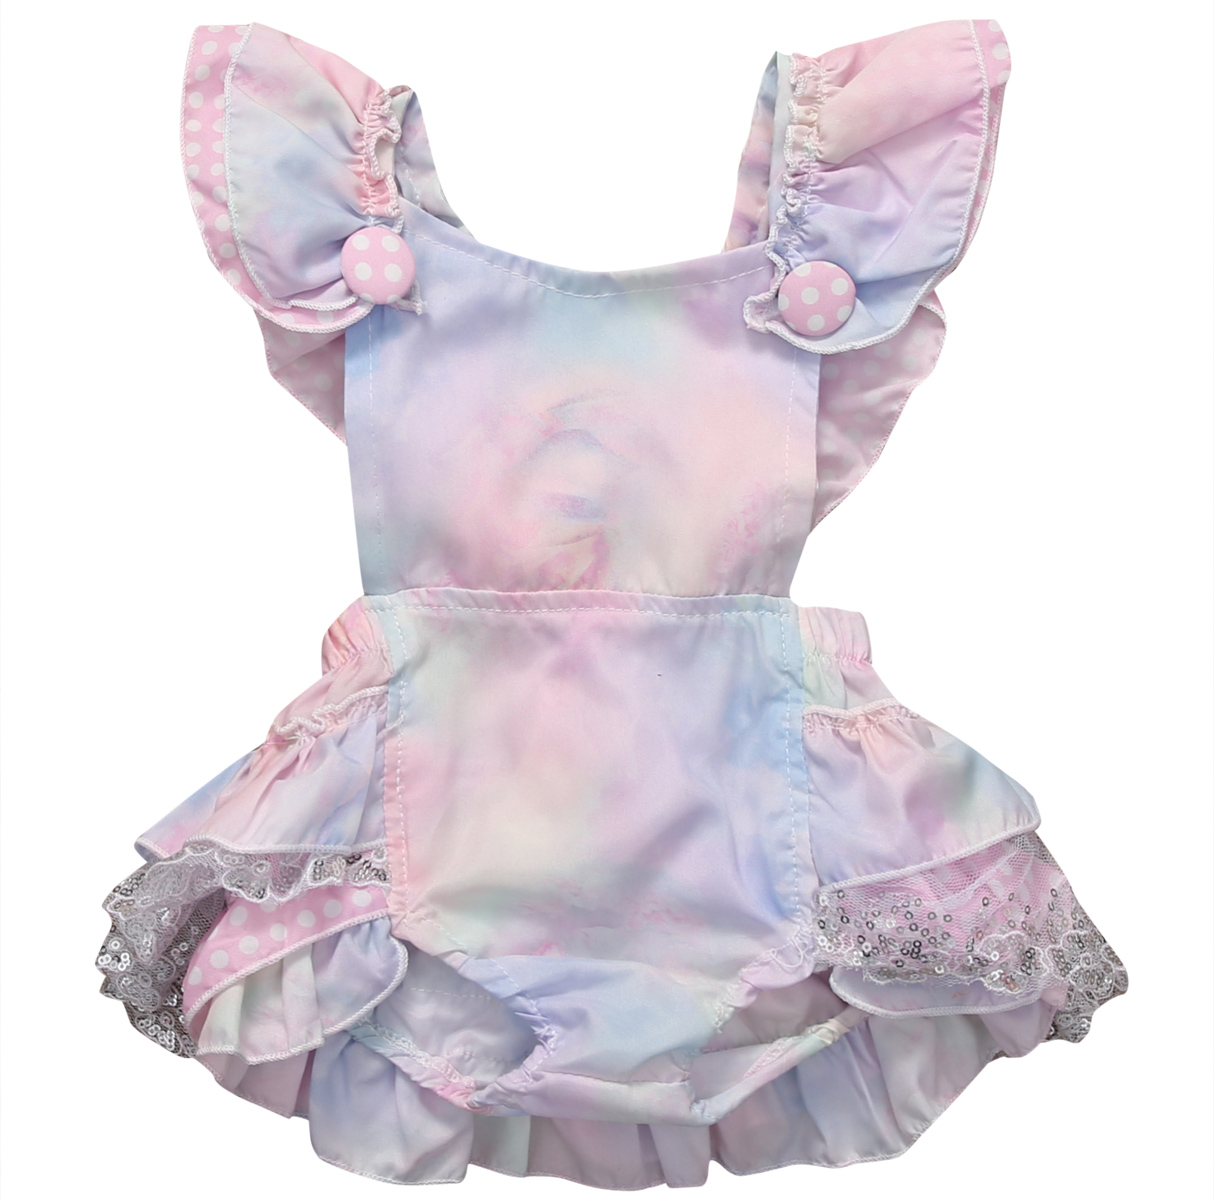 2017 Fashion Newborn Infant Baby Girl   Romper   Summer Ruffles Sleeve Halter Jumpsuit Princess Girls Birthday Gift Kid Sunsuit